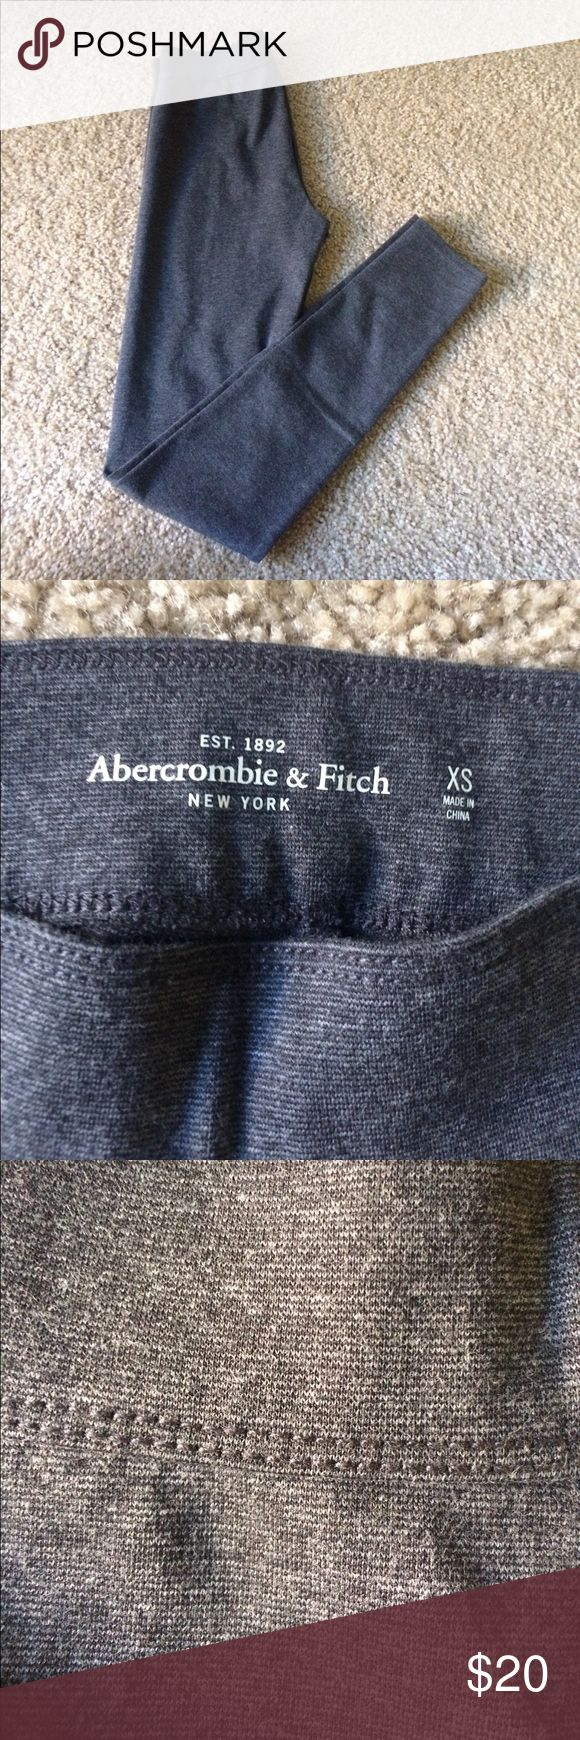 "NWOT gray Abercrombie and Fitch leggings Slightly marled gray leggings from Abercrombie and Fitch. Regular rise length, have never been worn. 27"" inseam Abercrombie & Fitch Pants Leggings"